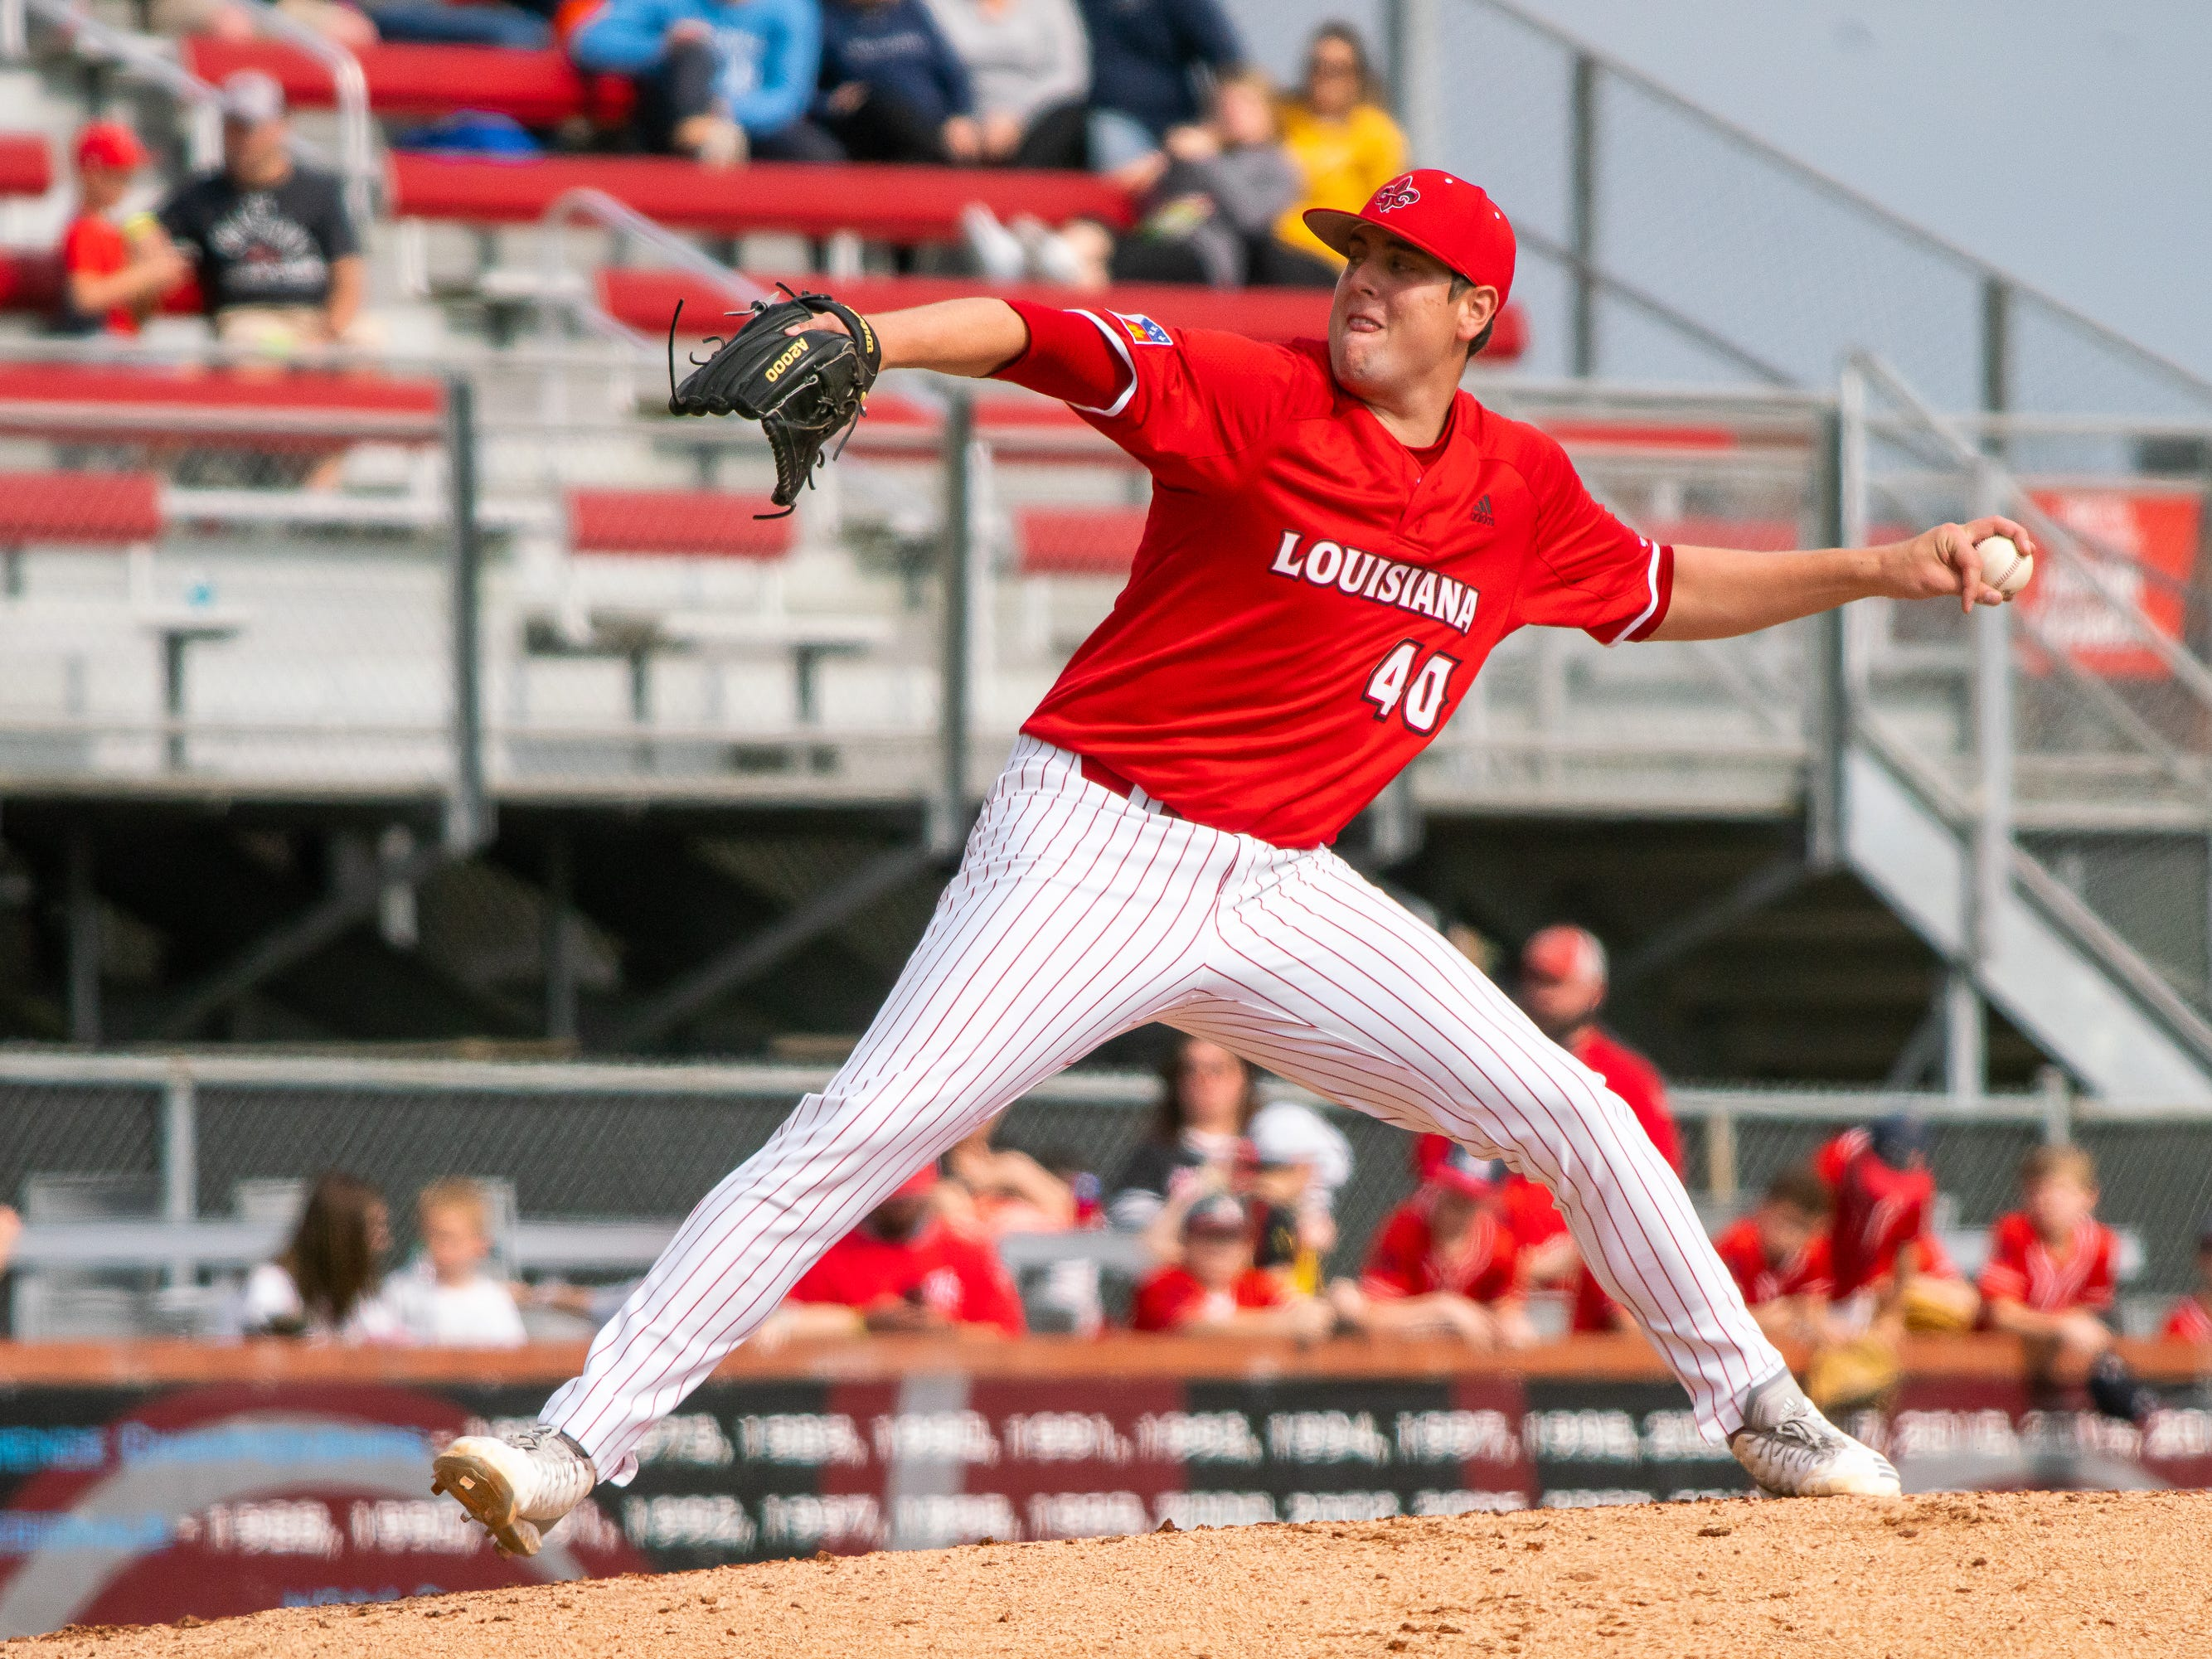 UL's Dalton Horton throws a pitch to the batter as the Ragin' Cajuns take on the Loyola-Marymount Lions at M.L. Tigue Moore Field on Saturday, March 9, 2019.